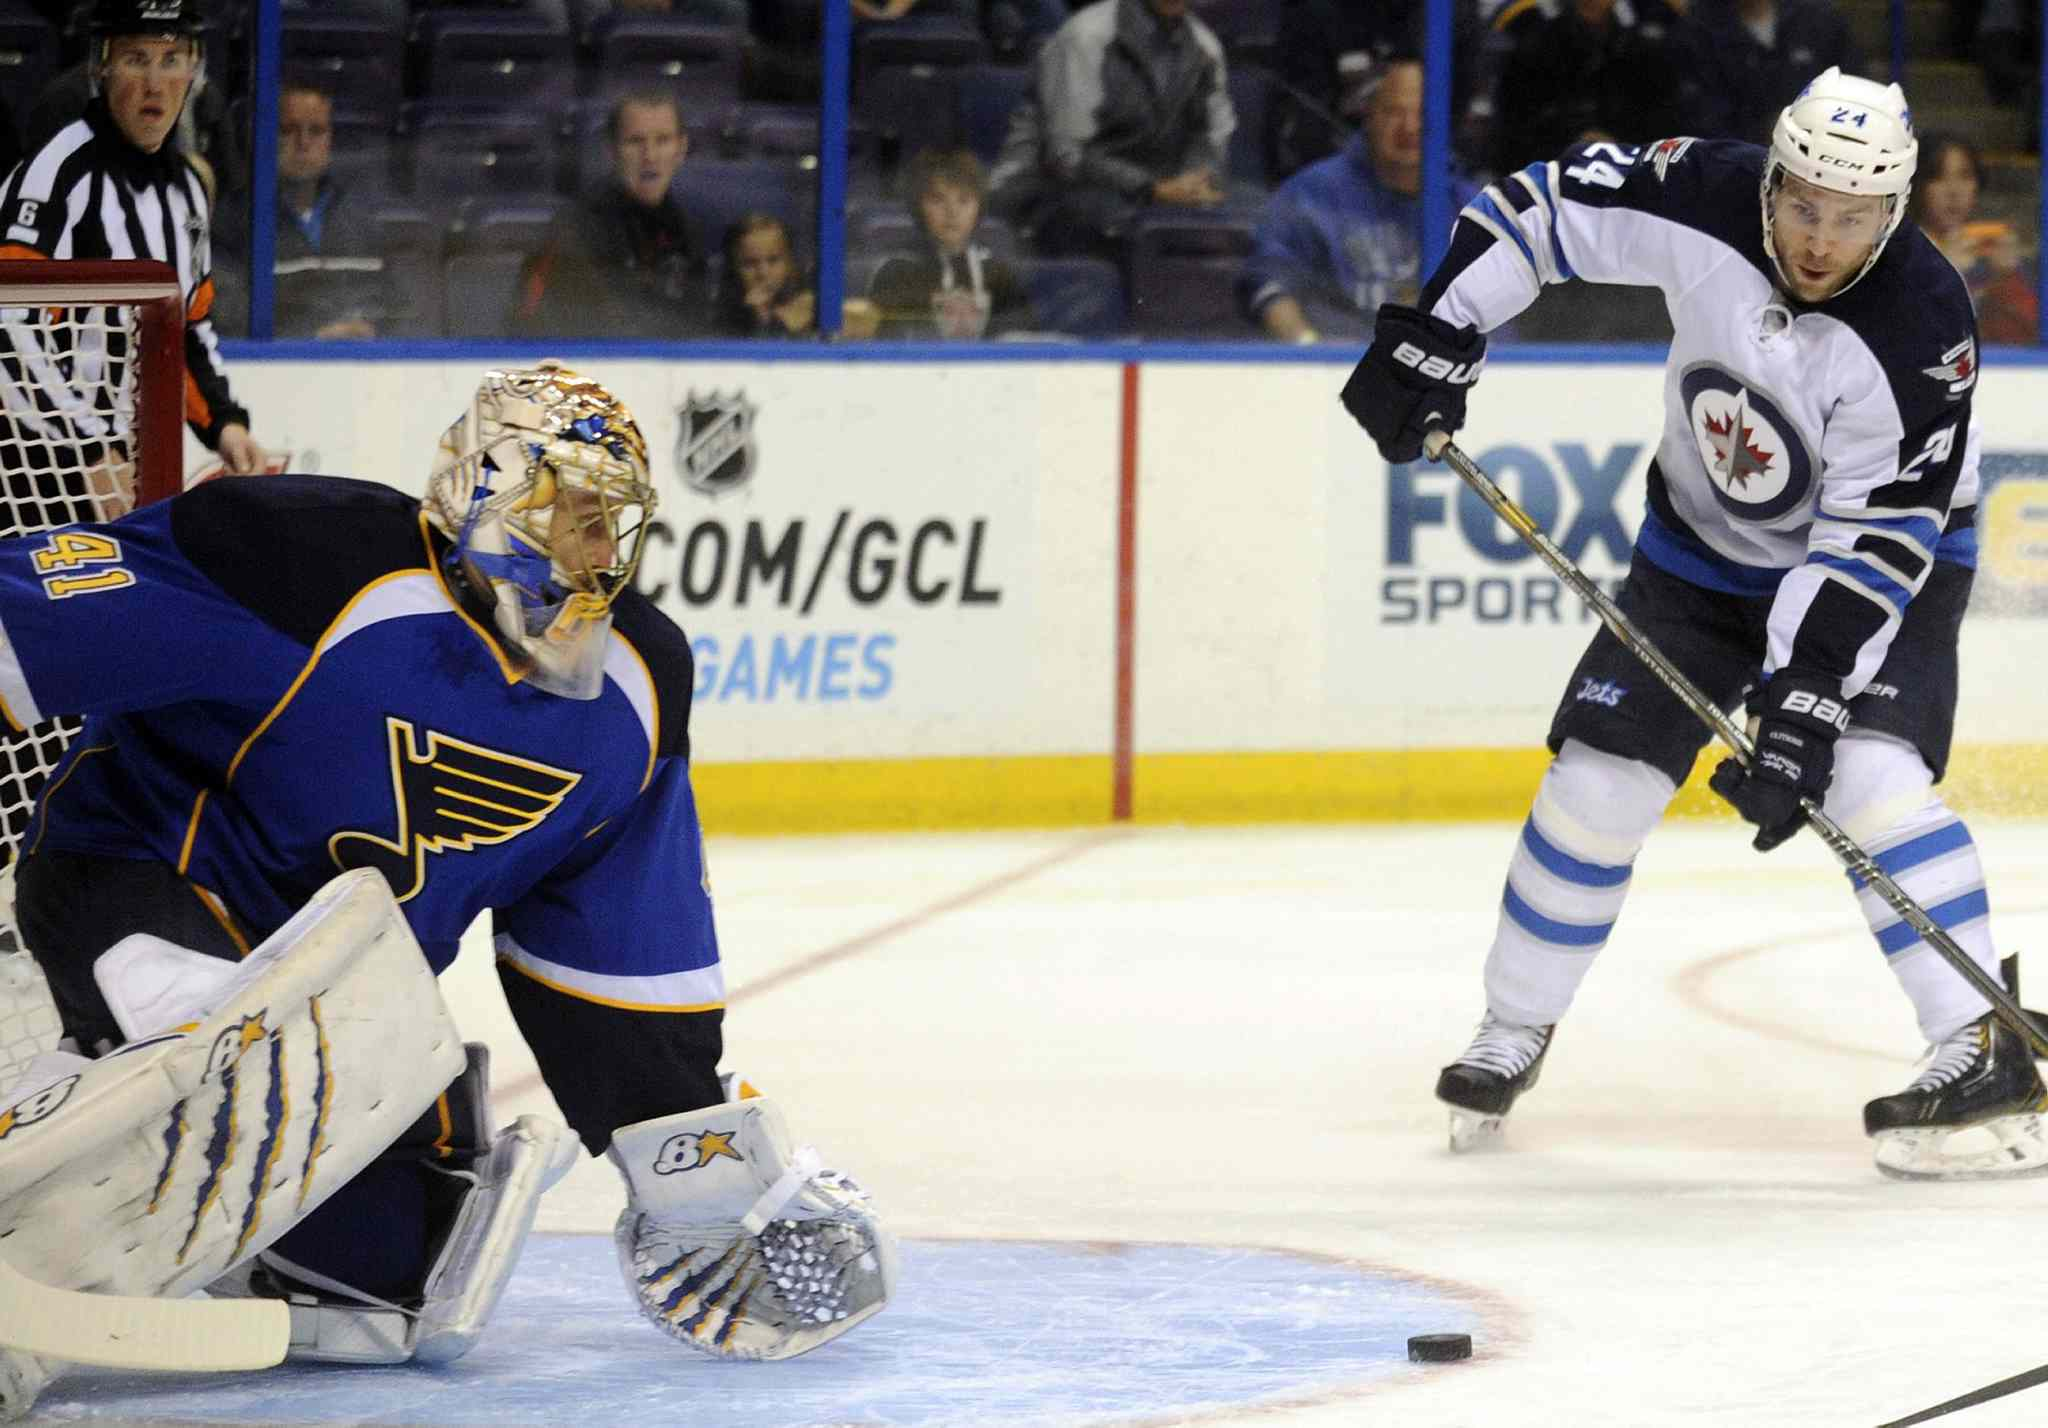 St. Louis Blues' goalie Jaroslav Halak blocks a shot by Winnipeg Jets defenceman Grant Clitsome in the first period.